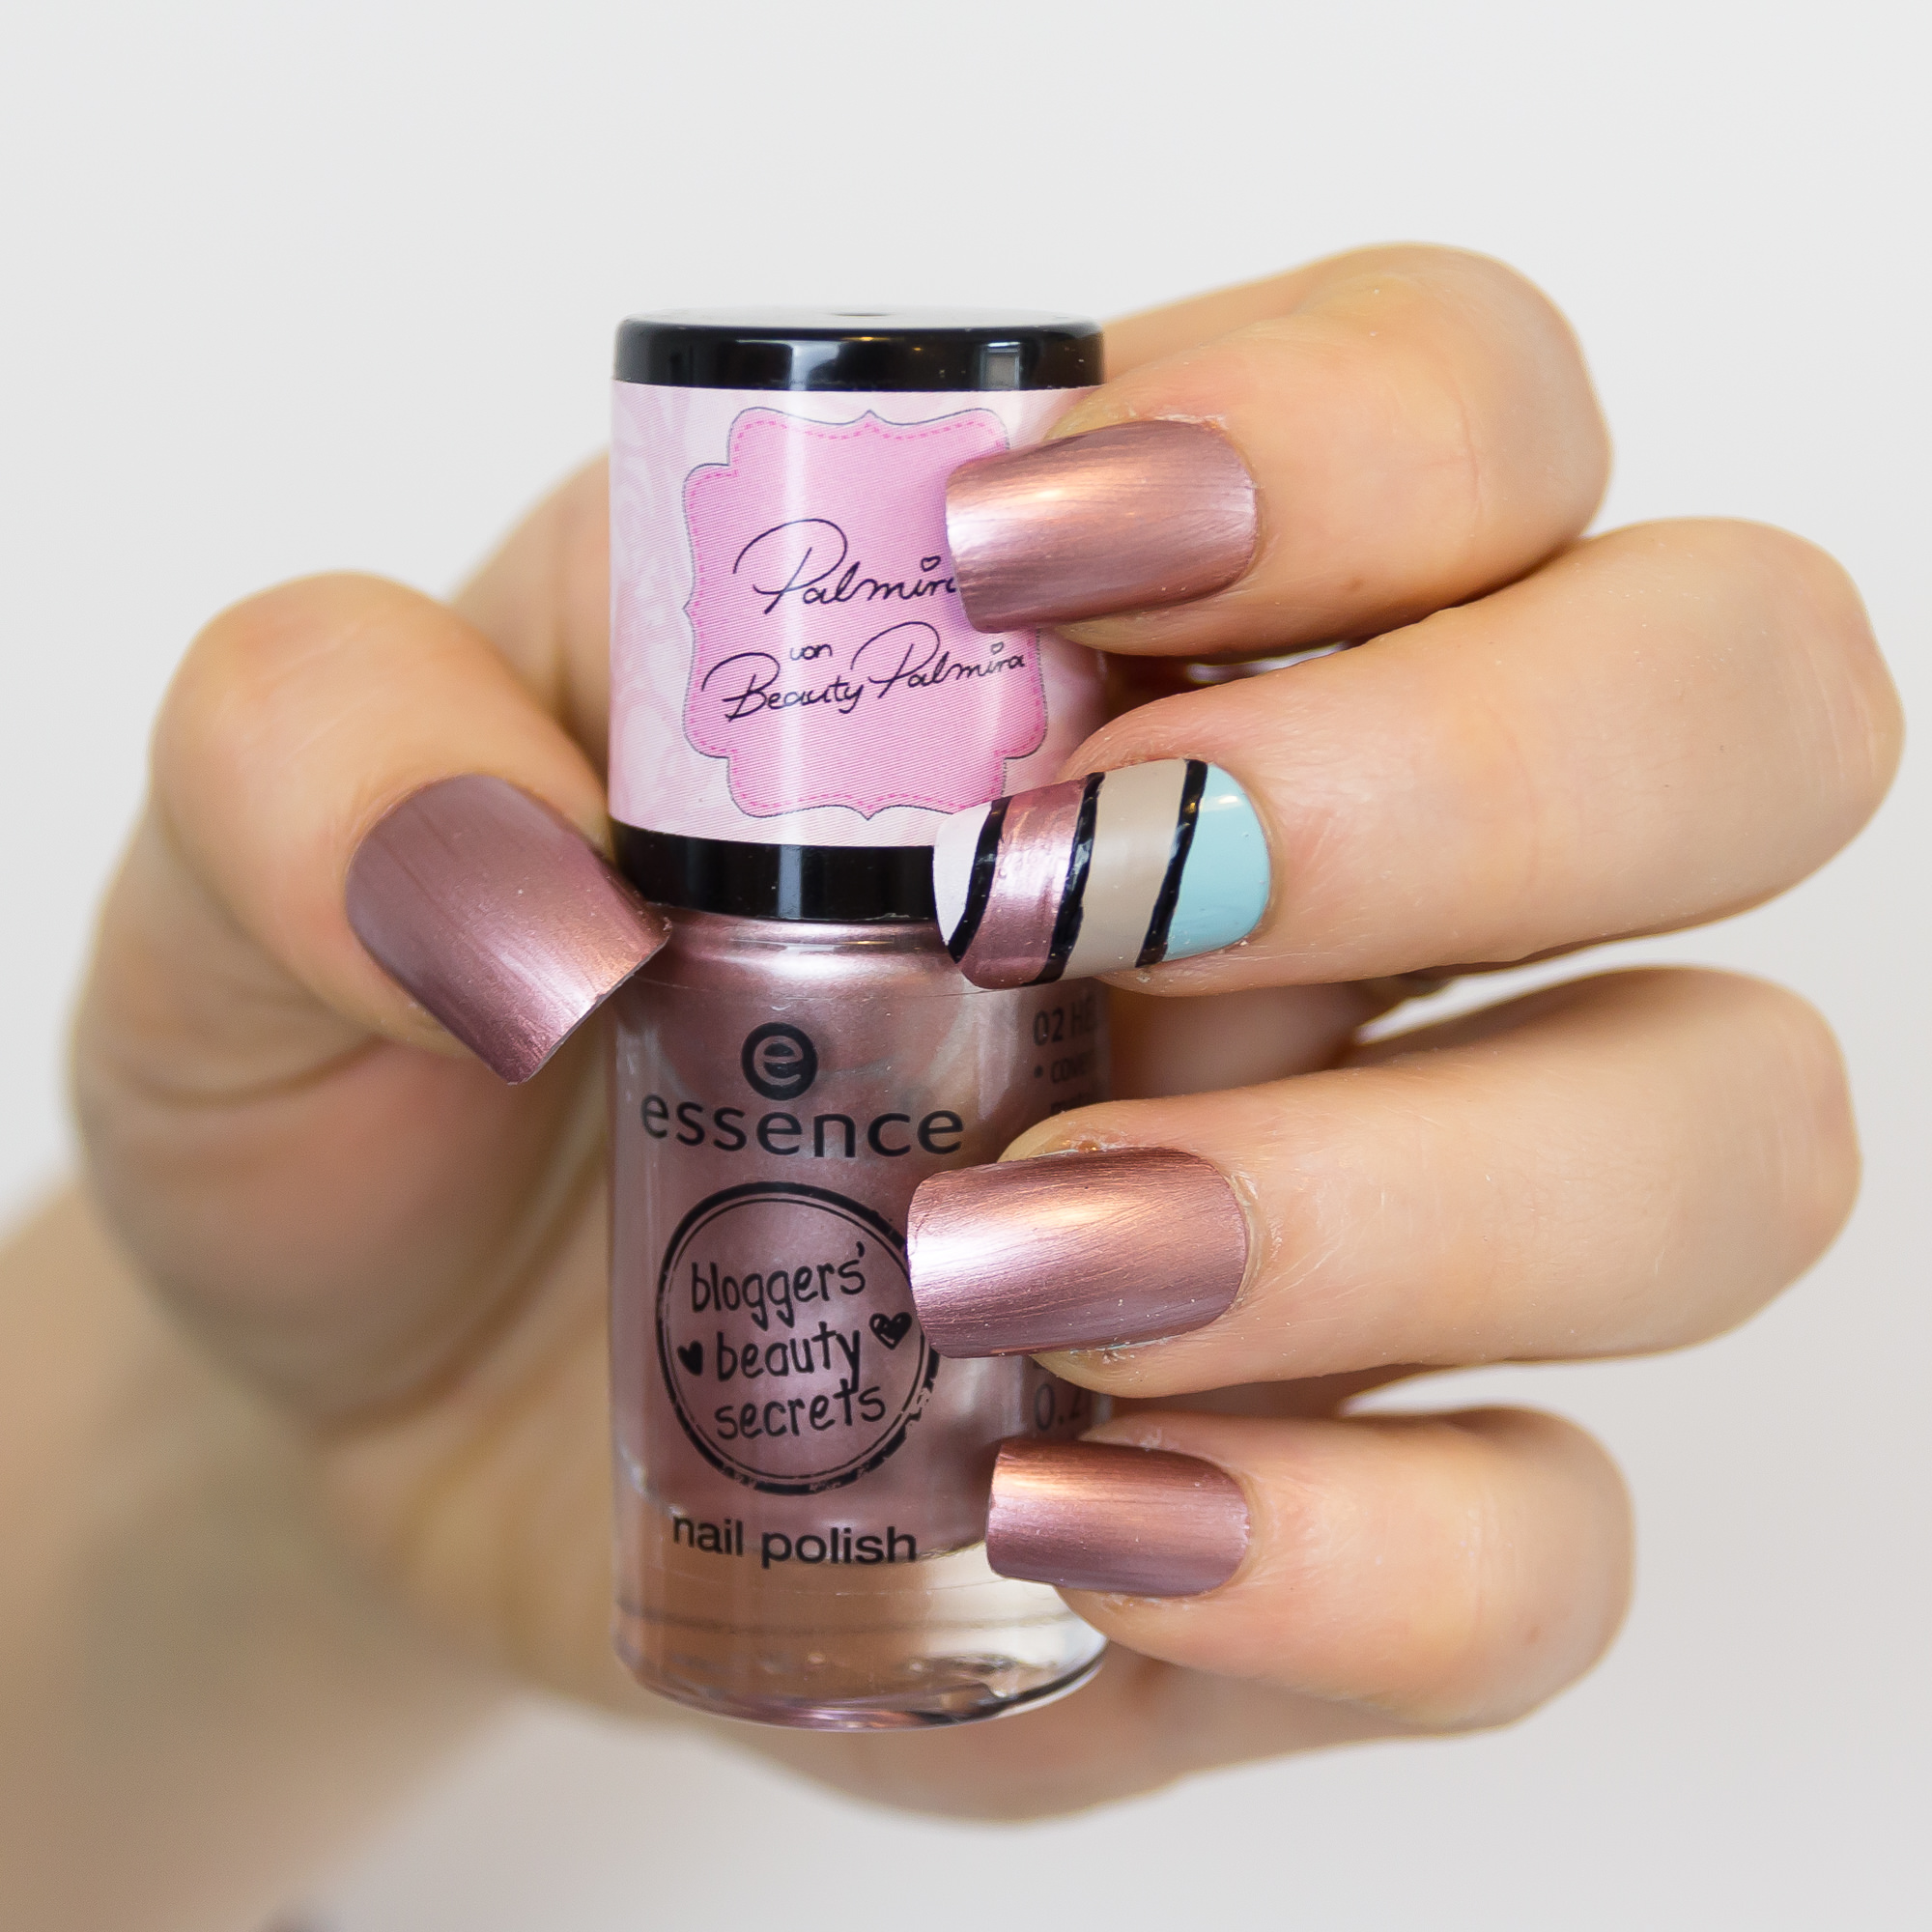 essence cosmetics bloggers beauty secrets nail polishes